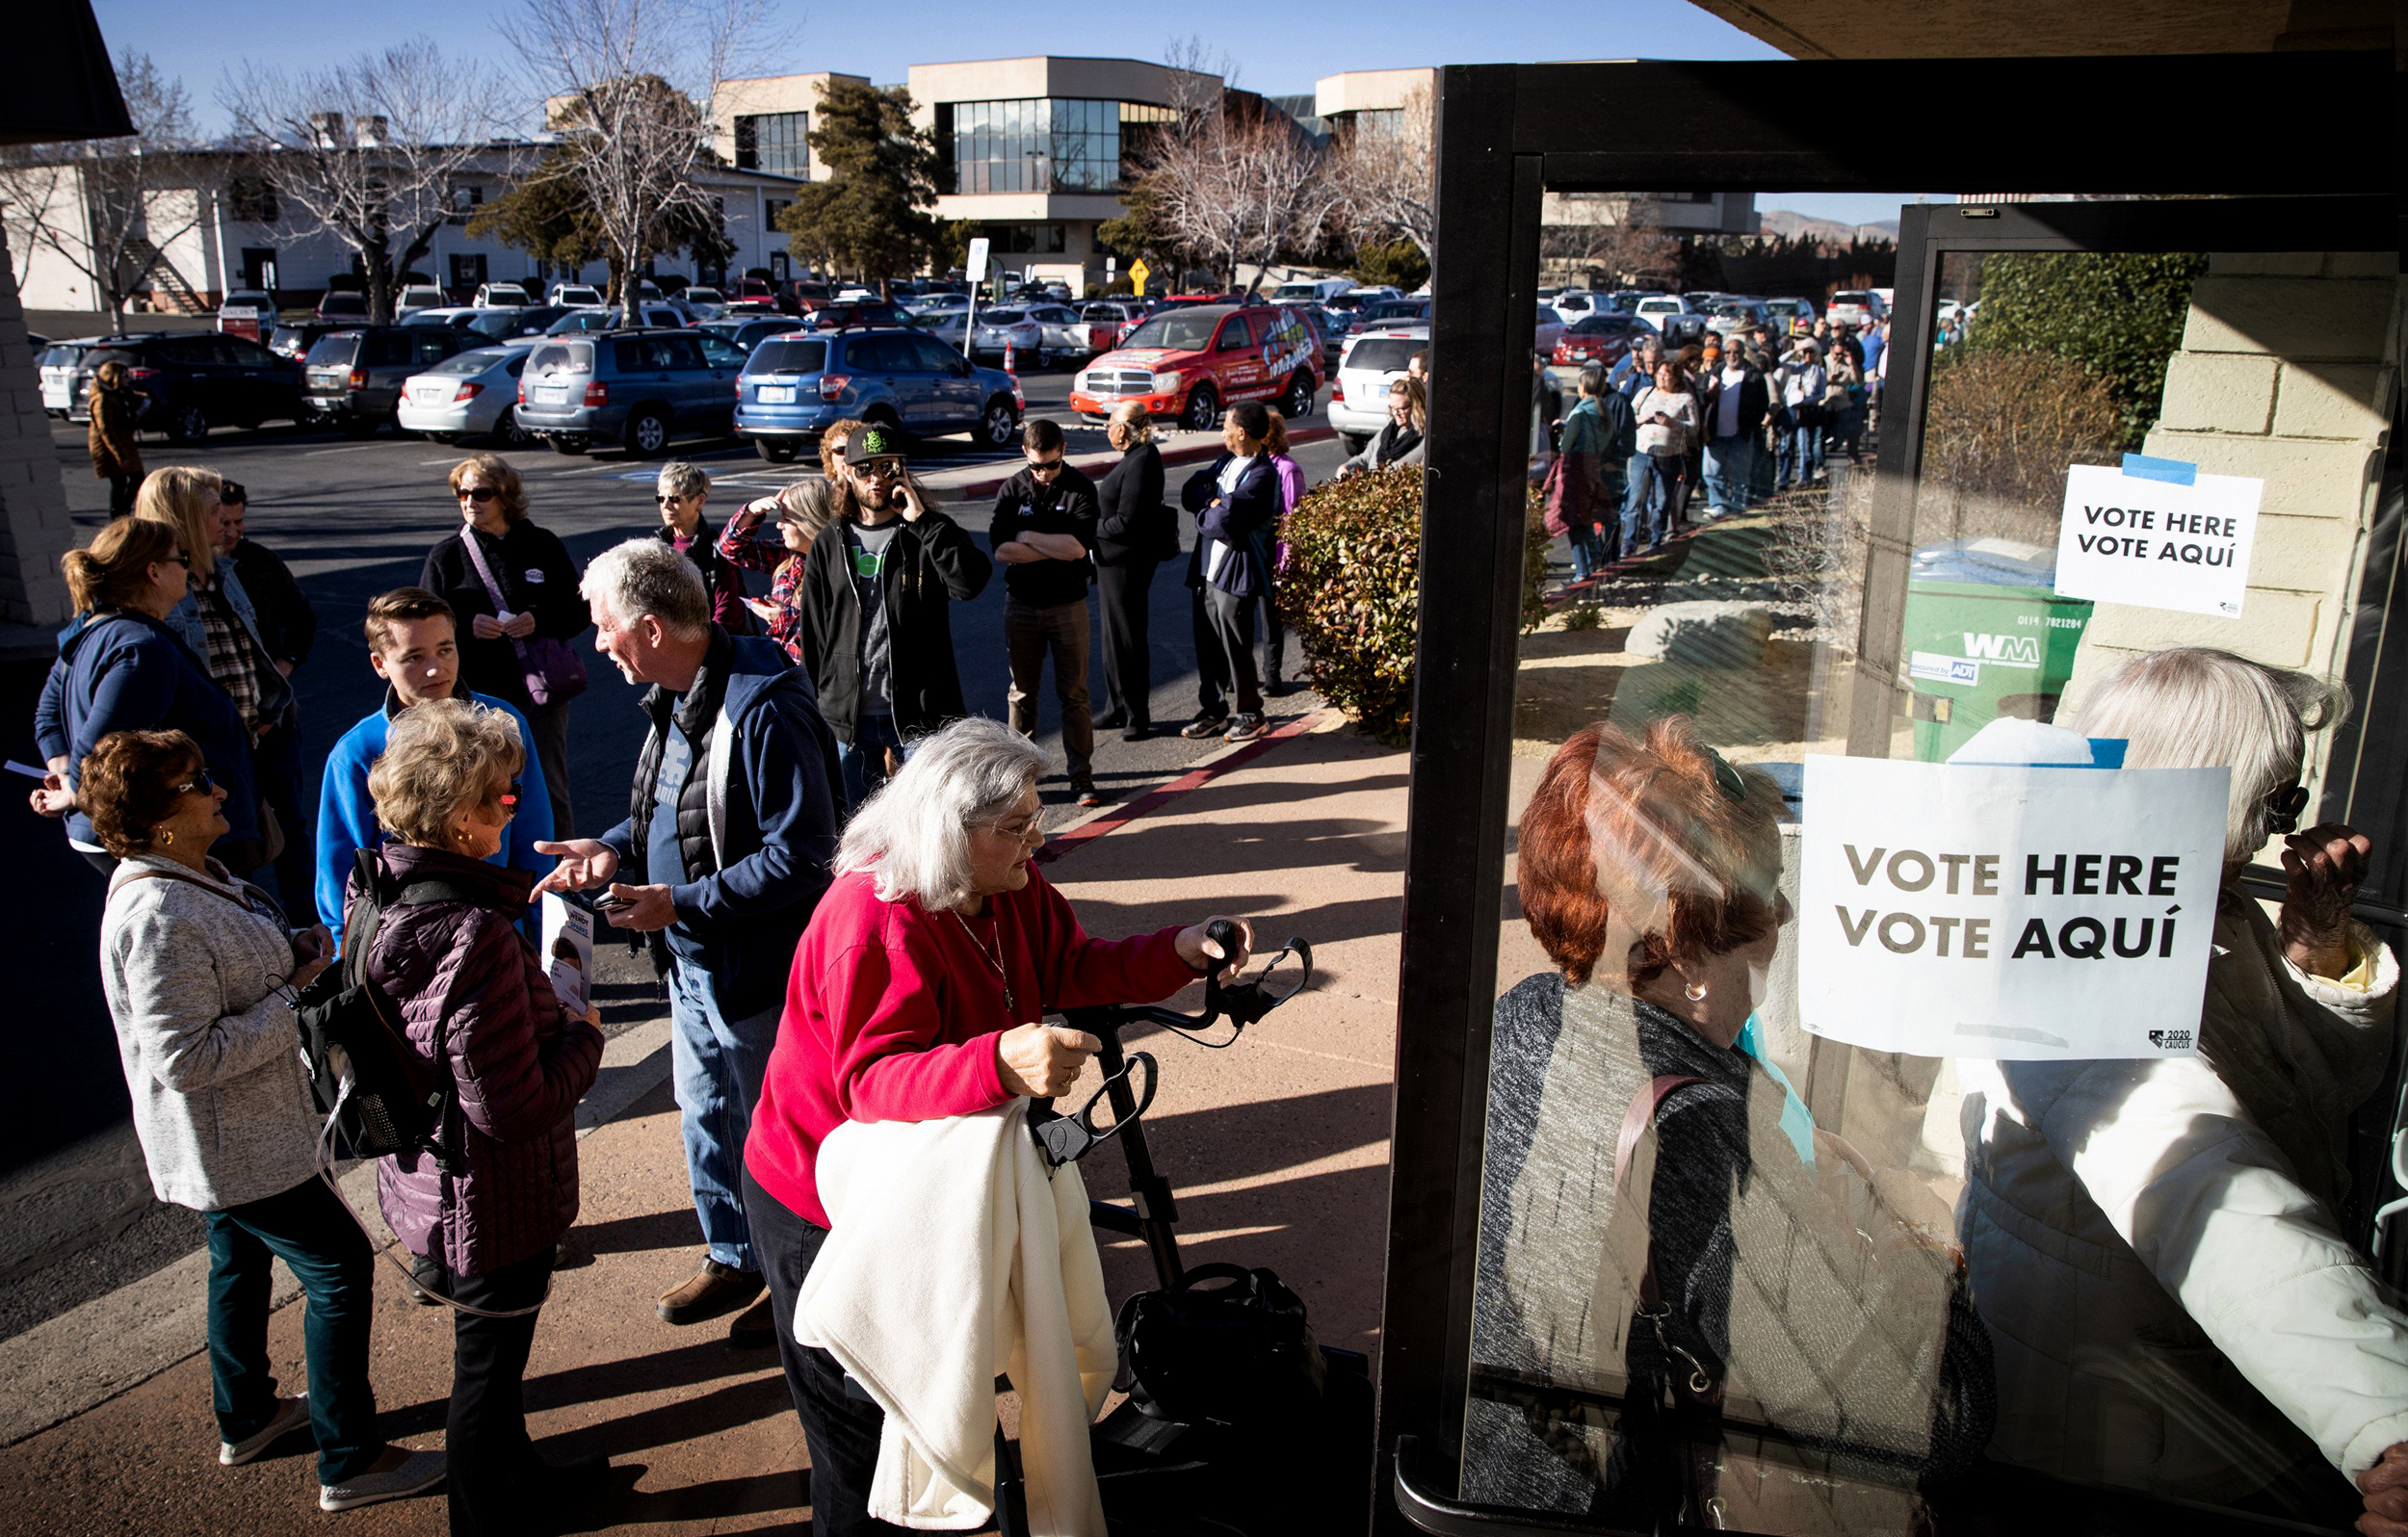 Caucus Chaos Again Experts Fear Vote Counting Problems In Nevada